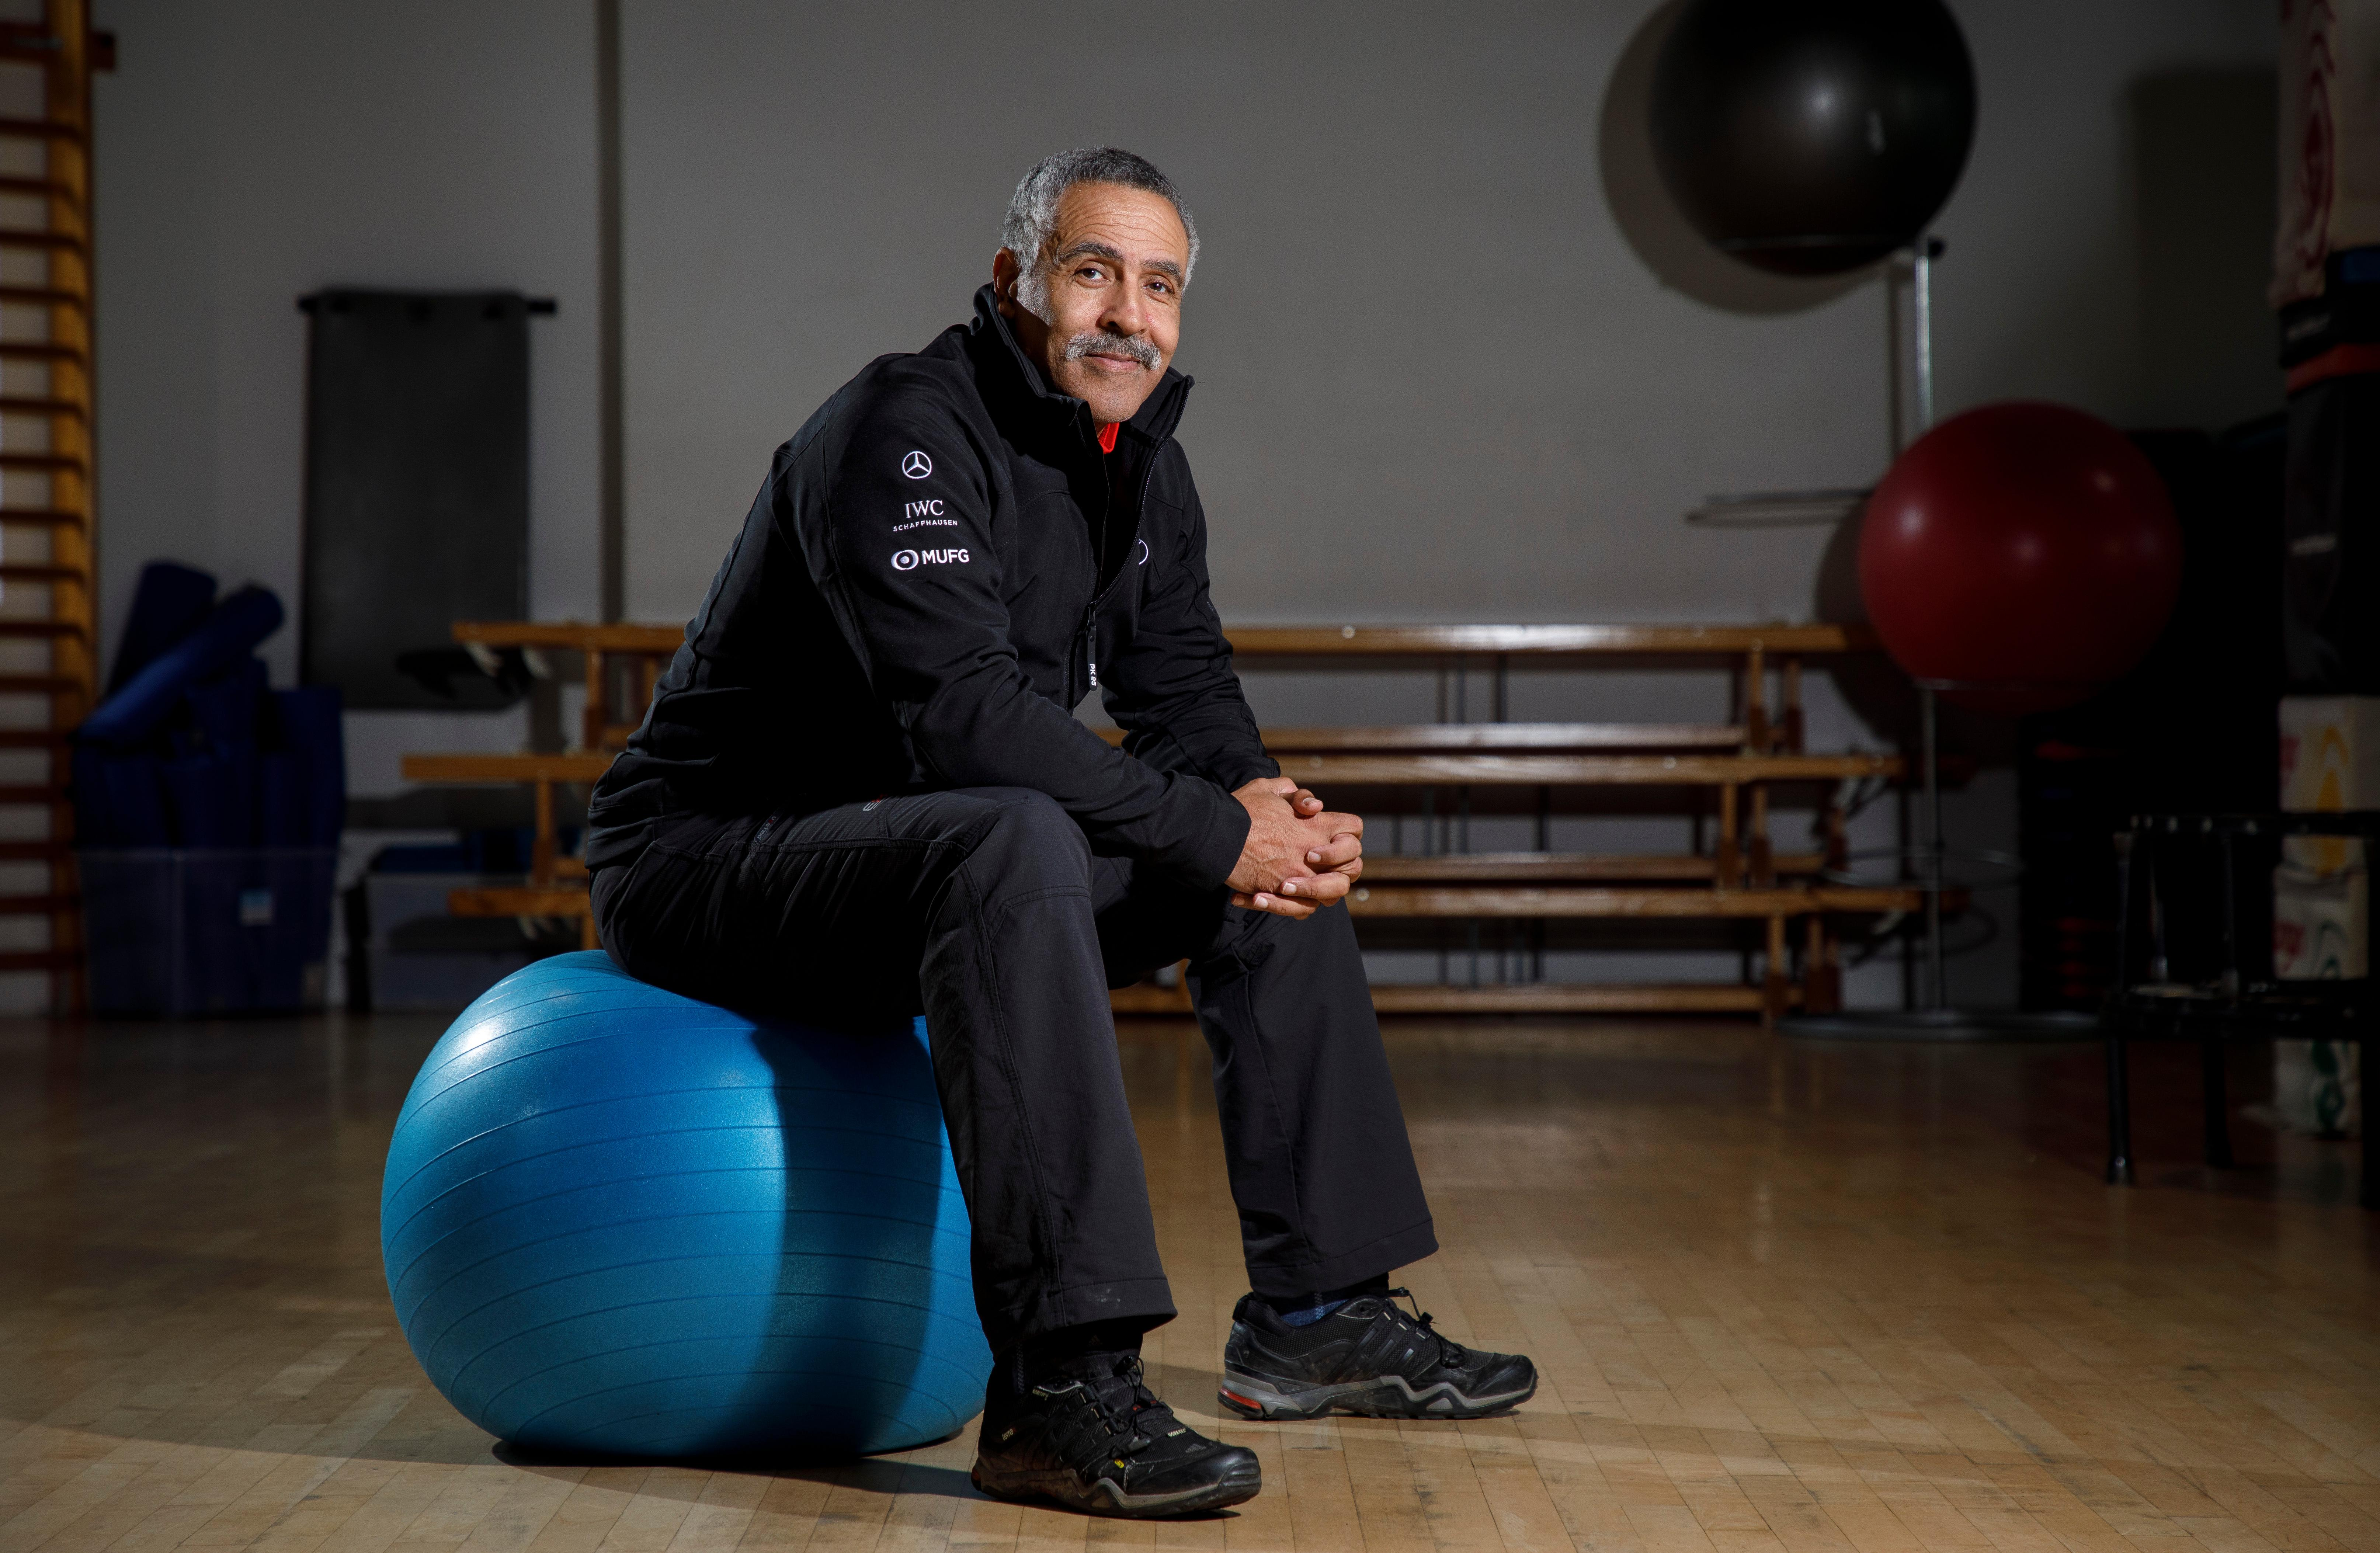 Daley Thompson: 'I'd love to help British athletes. I'd be over the moon'